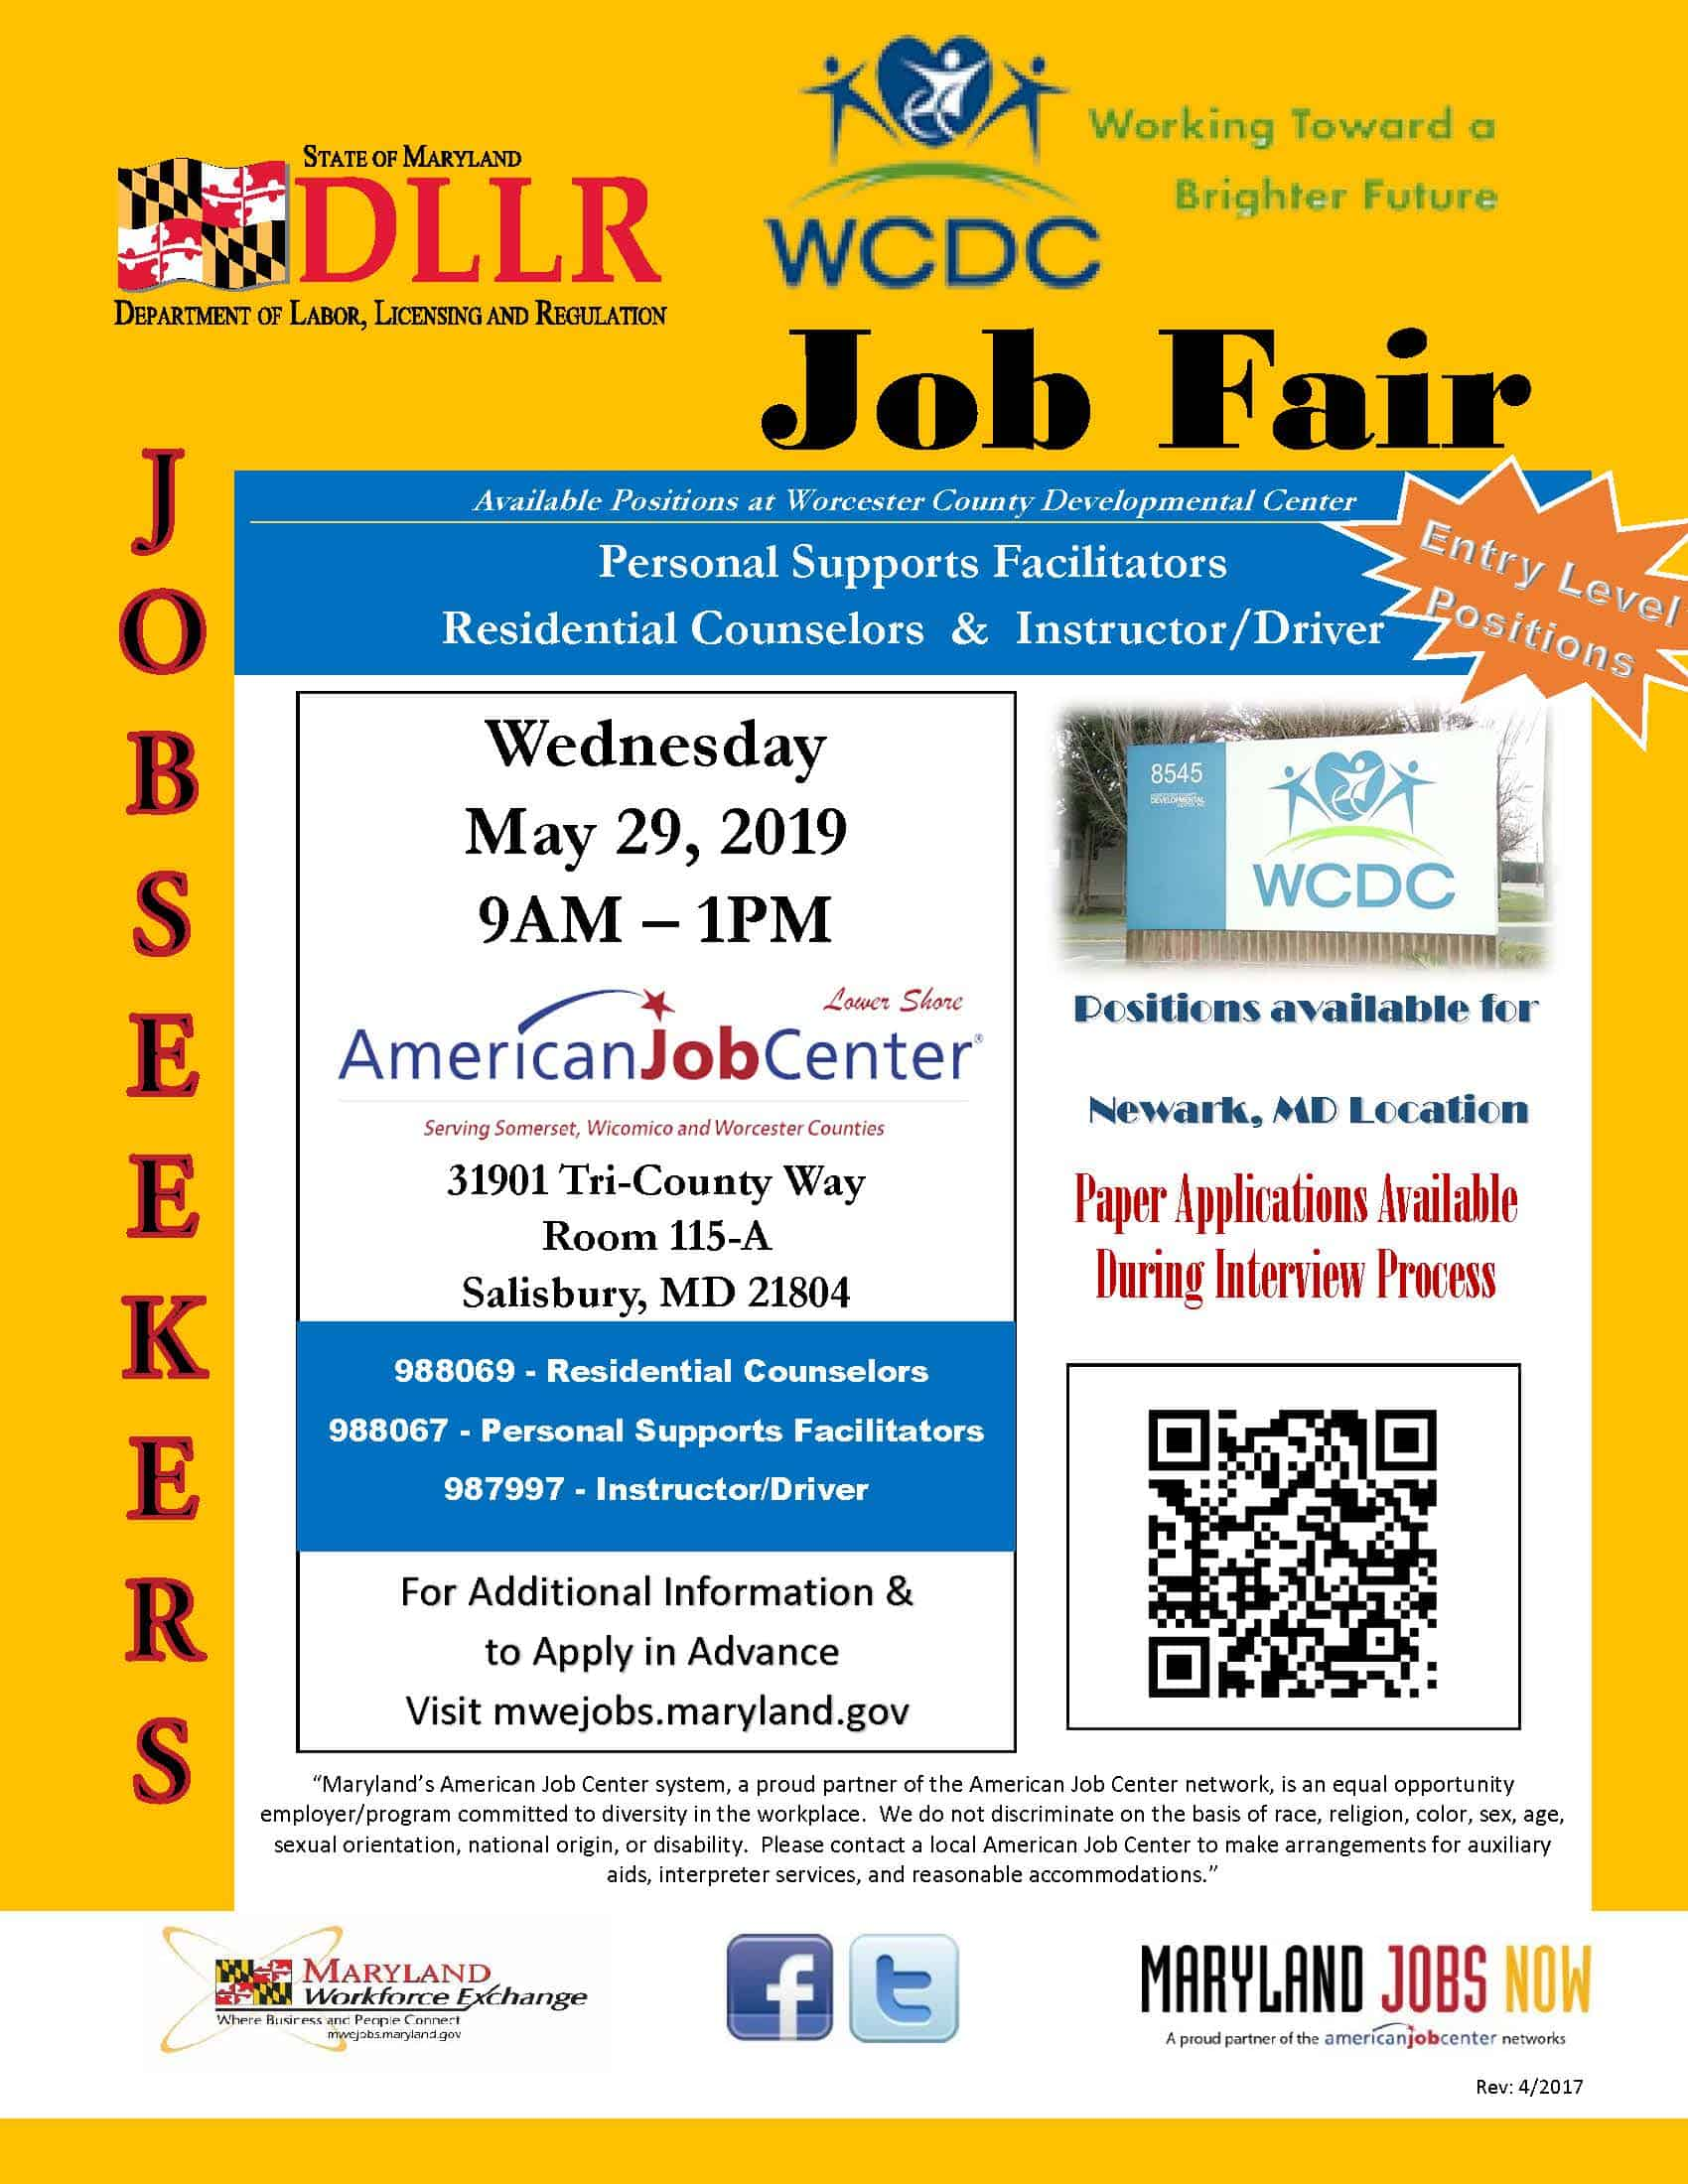 WCDC Job Fair Flyer 052919